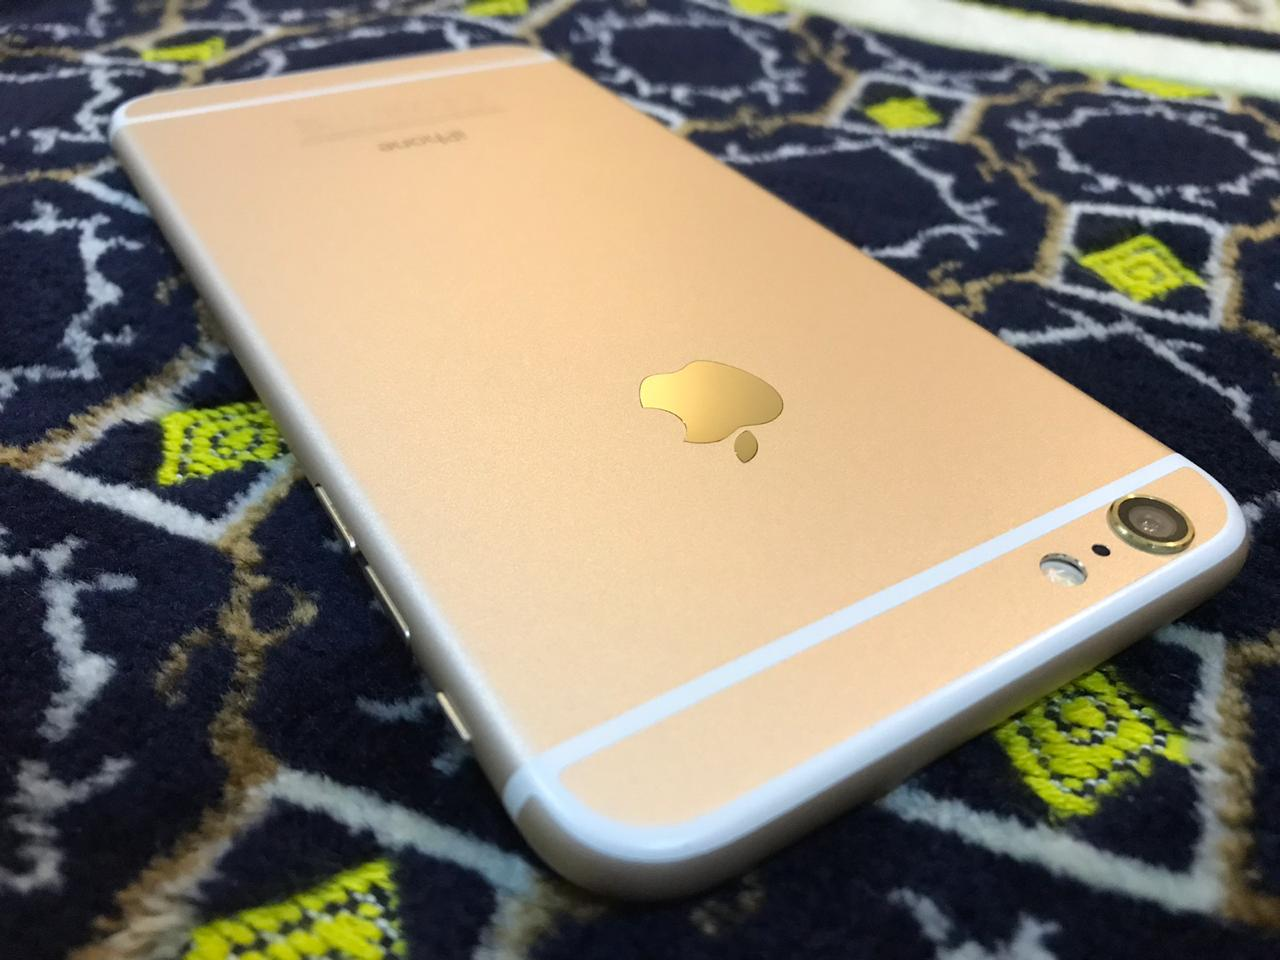 Apple iPhone 6 Plus 16gb Gold just Like Zero 10/10 IMEI Match Complete Accessories - photo 2